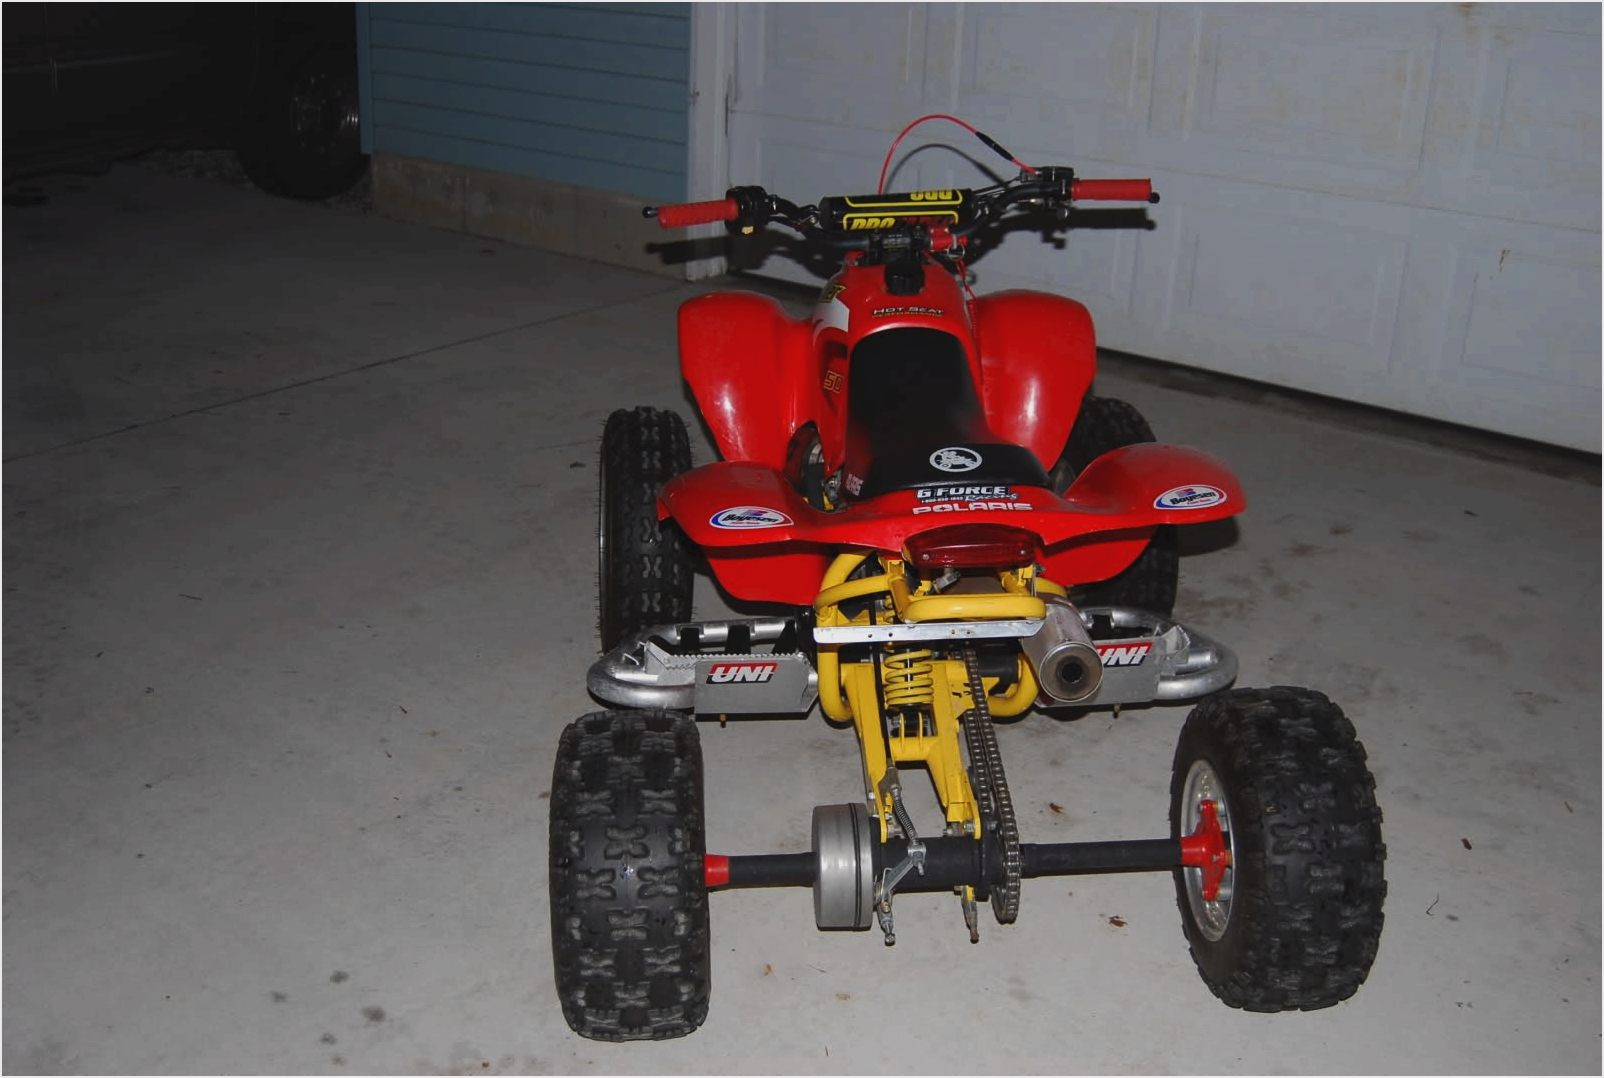 Polaris Scrambler 500 4x4 2006 images #121175